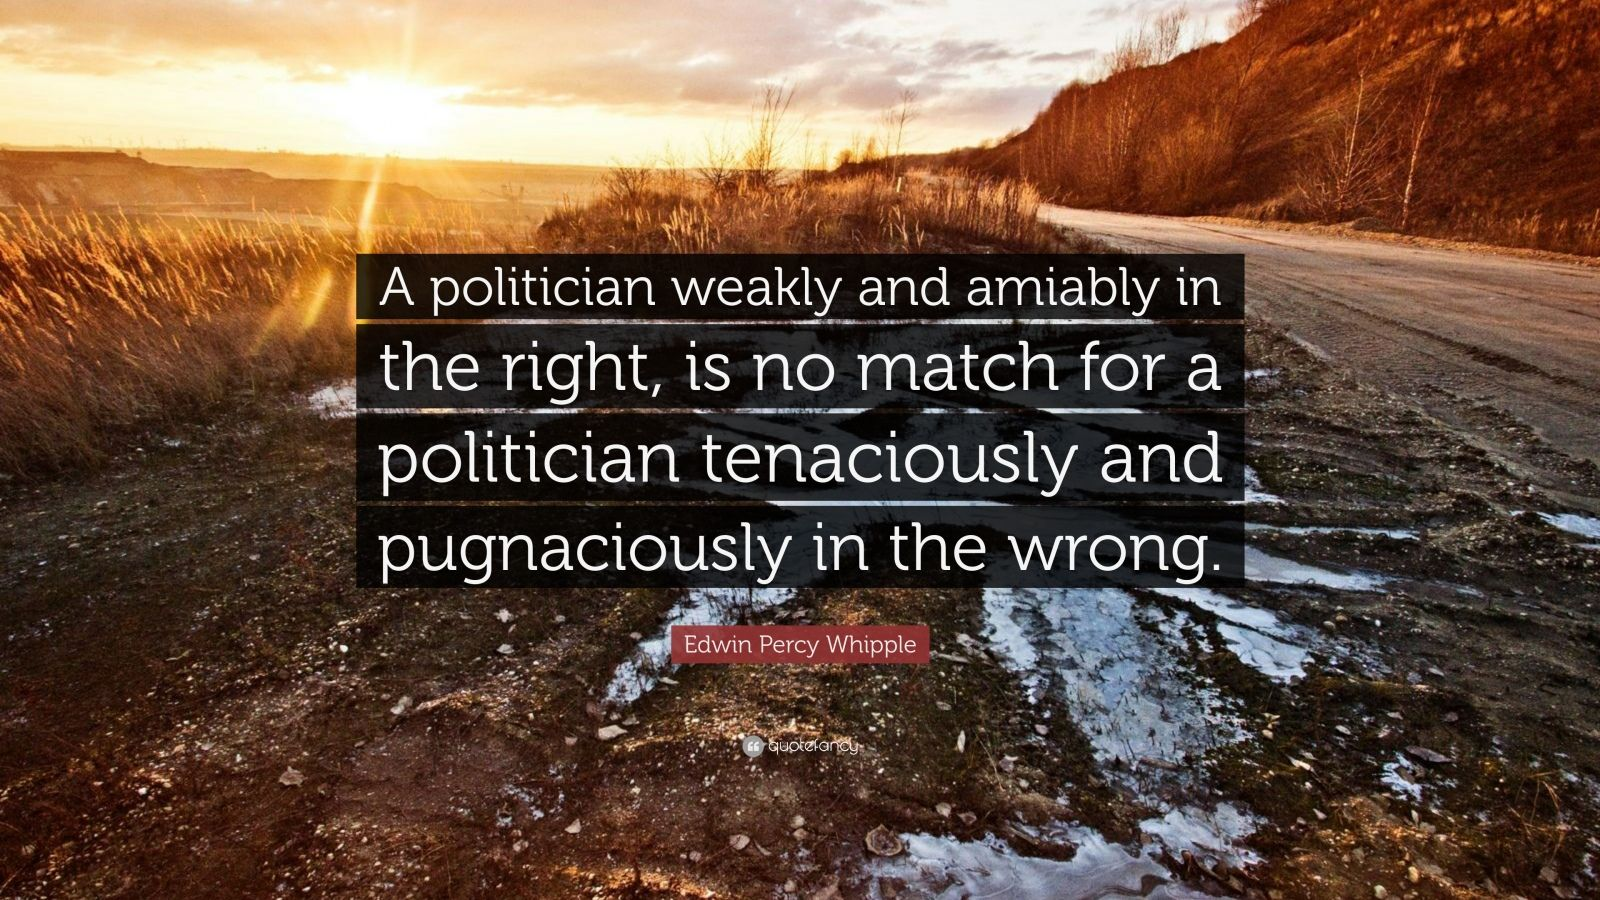 """Edwin Percy Whipple Quote: """"A politician weakly and amiably in the right, is no match for a politician tenaciously and pugnaciously in the wrong."""""""